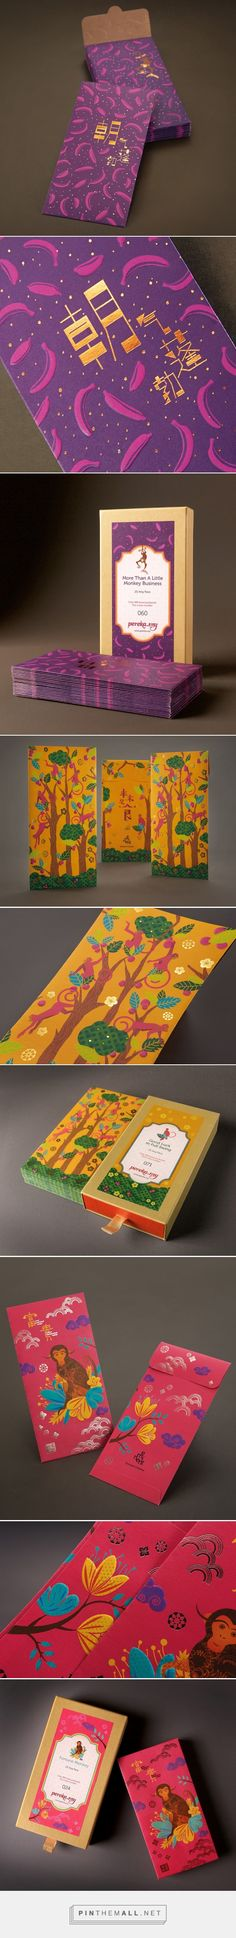 Monkey Series Angpao Packaging - Packaging of the World - Creative Package… Chinese Design, Japanese Graphic Design, Branding, New Year Illustration, Creative Cards, Creative Package, Red Packet, Cool Packaging, Eco Friendly Paper